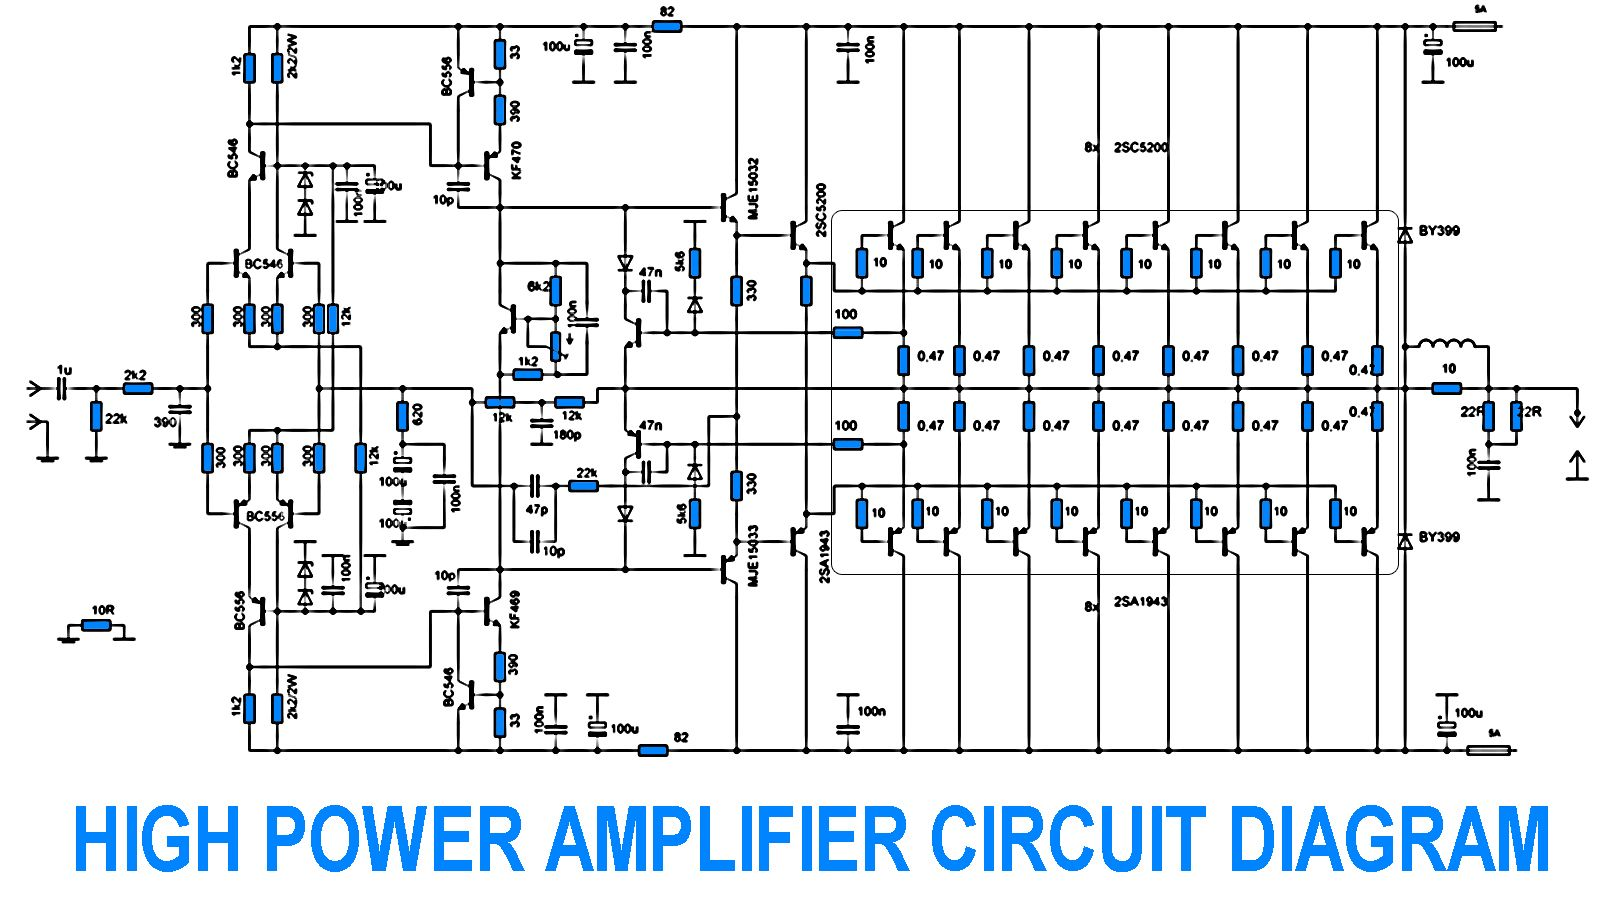 700w Power Amplifier With 2sc5200 2sa1943 Other Projects In 2018 What Are Electronic Circuit